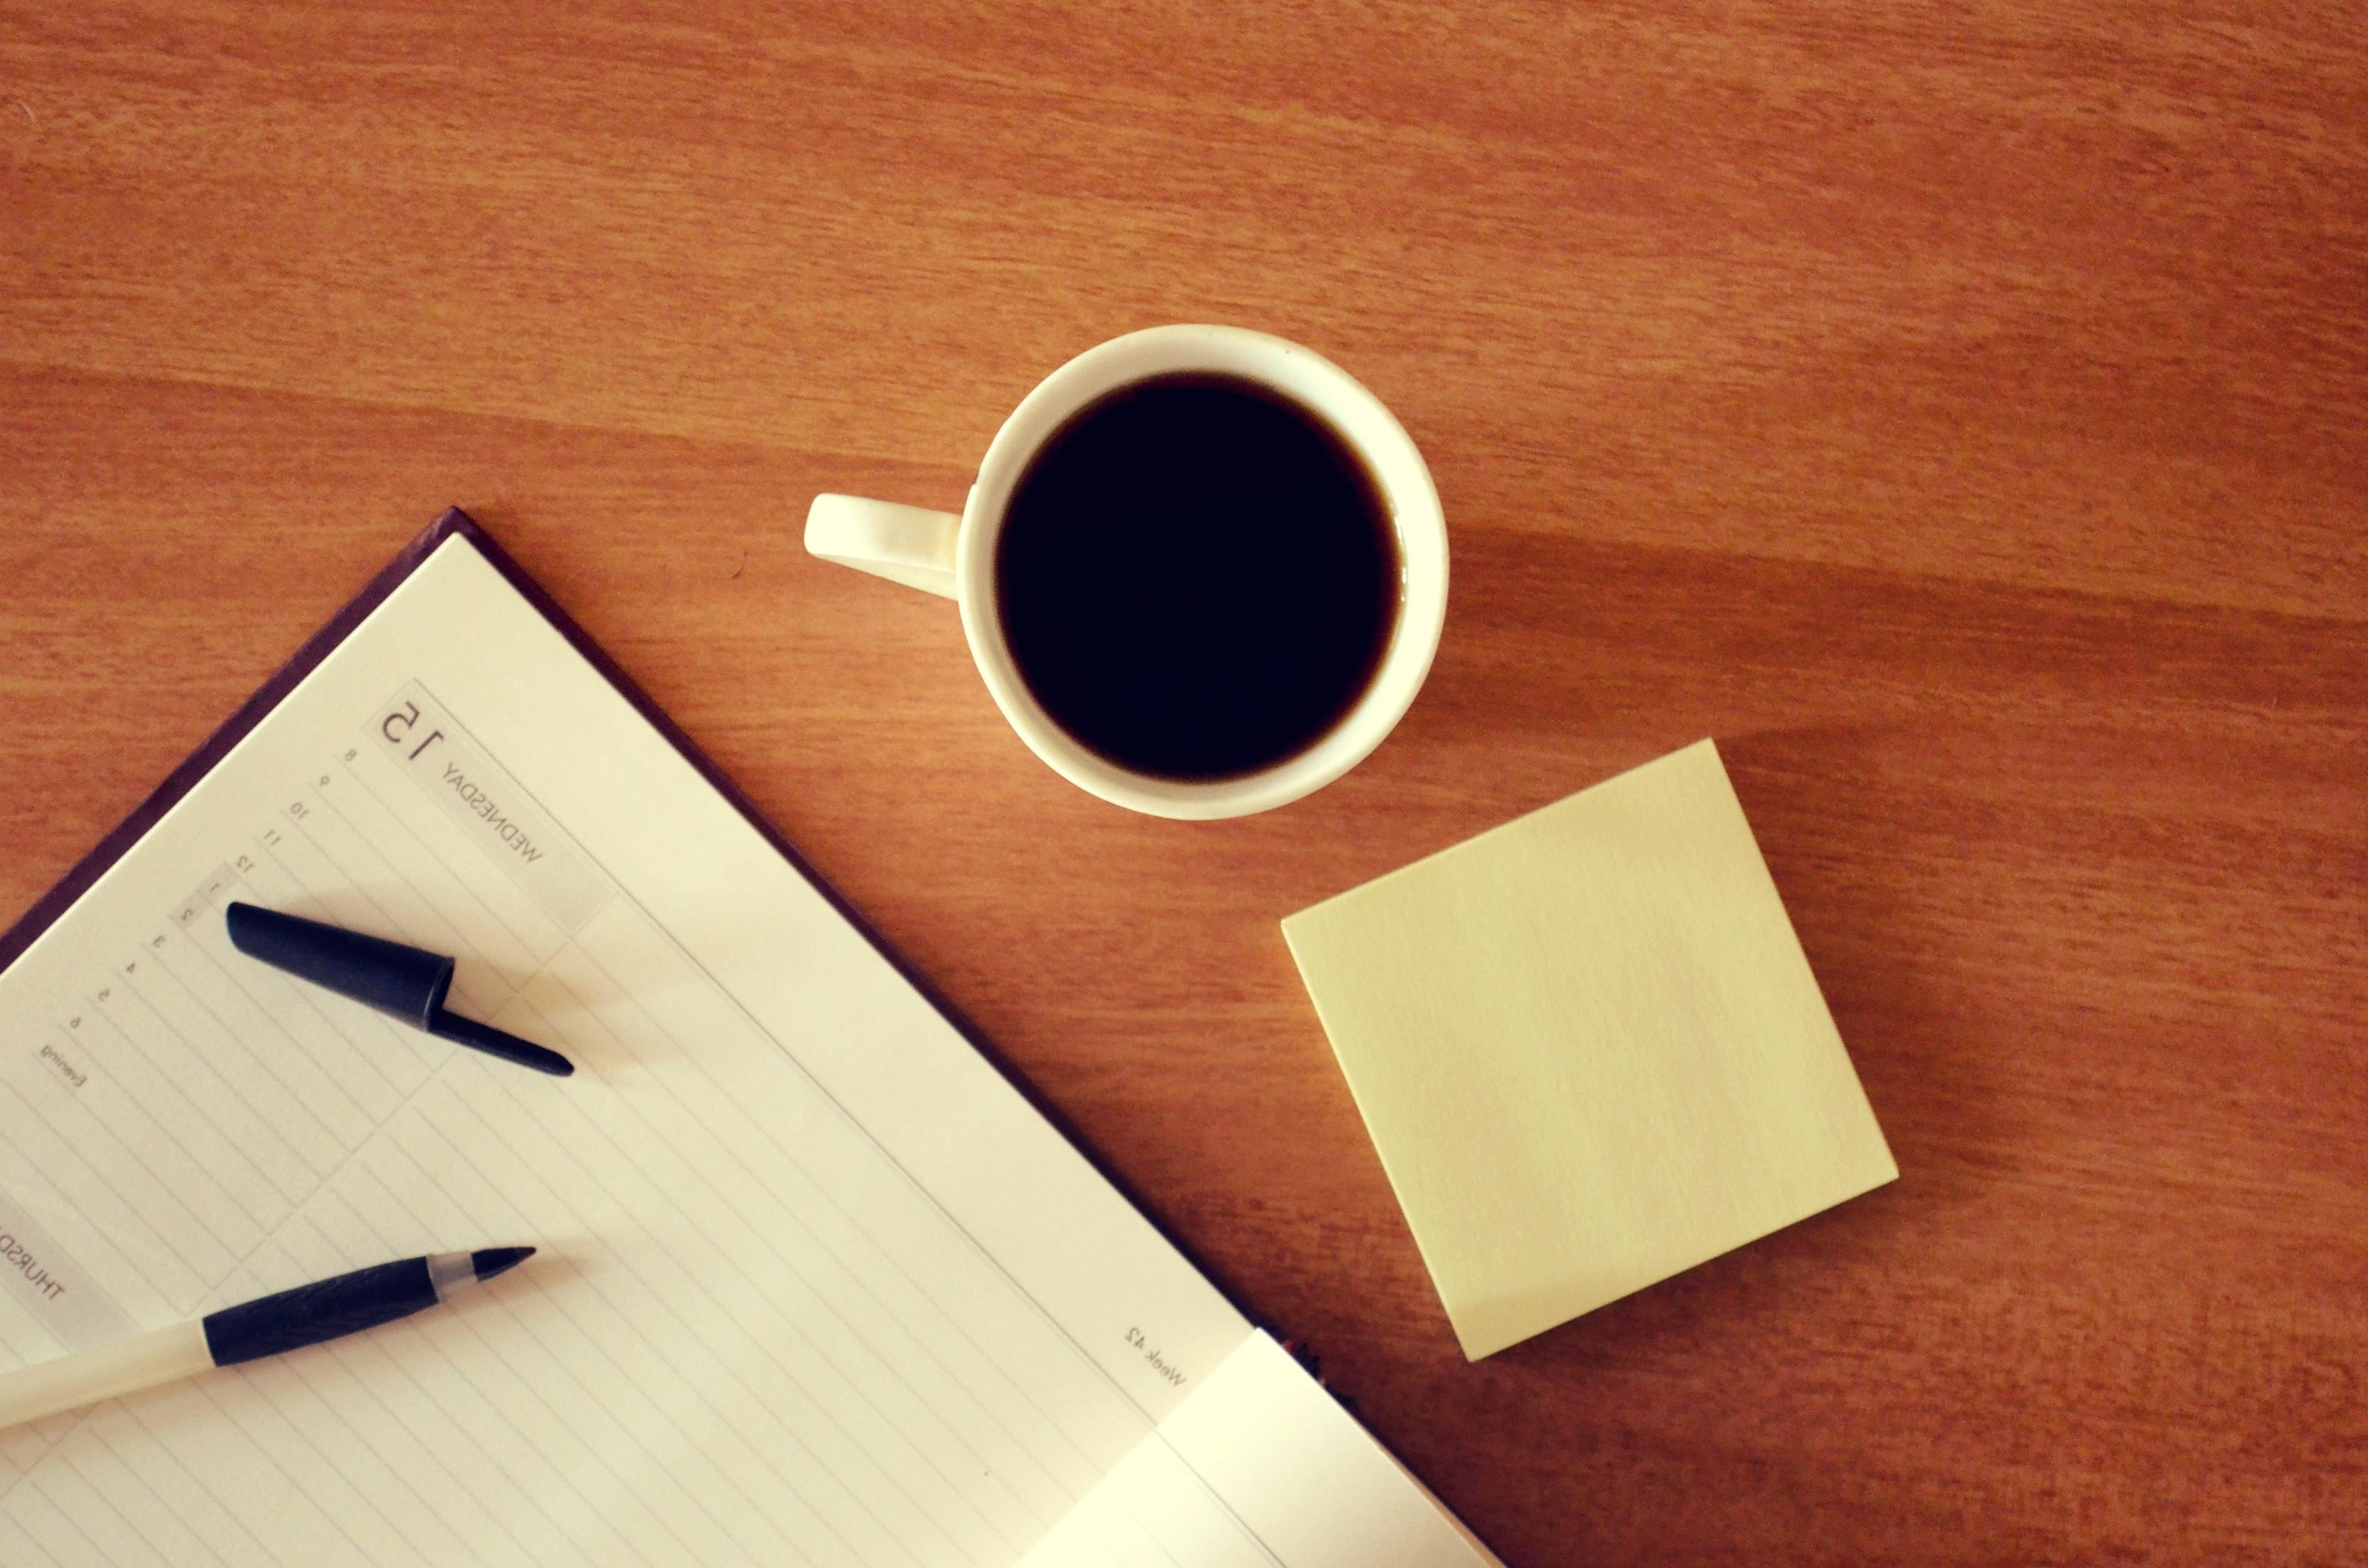 Free picture: paper, coffee, wood, laptop, desk, table, notebook ...